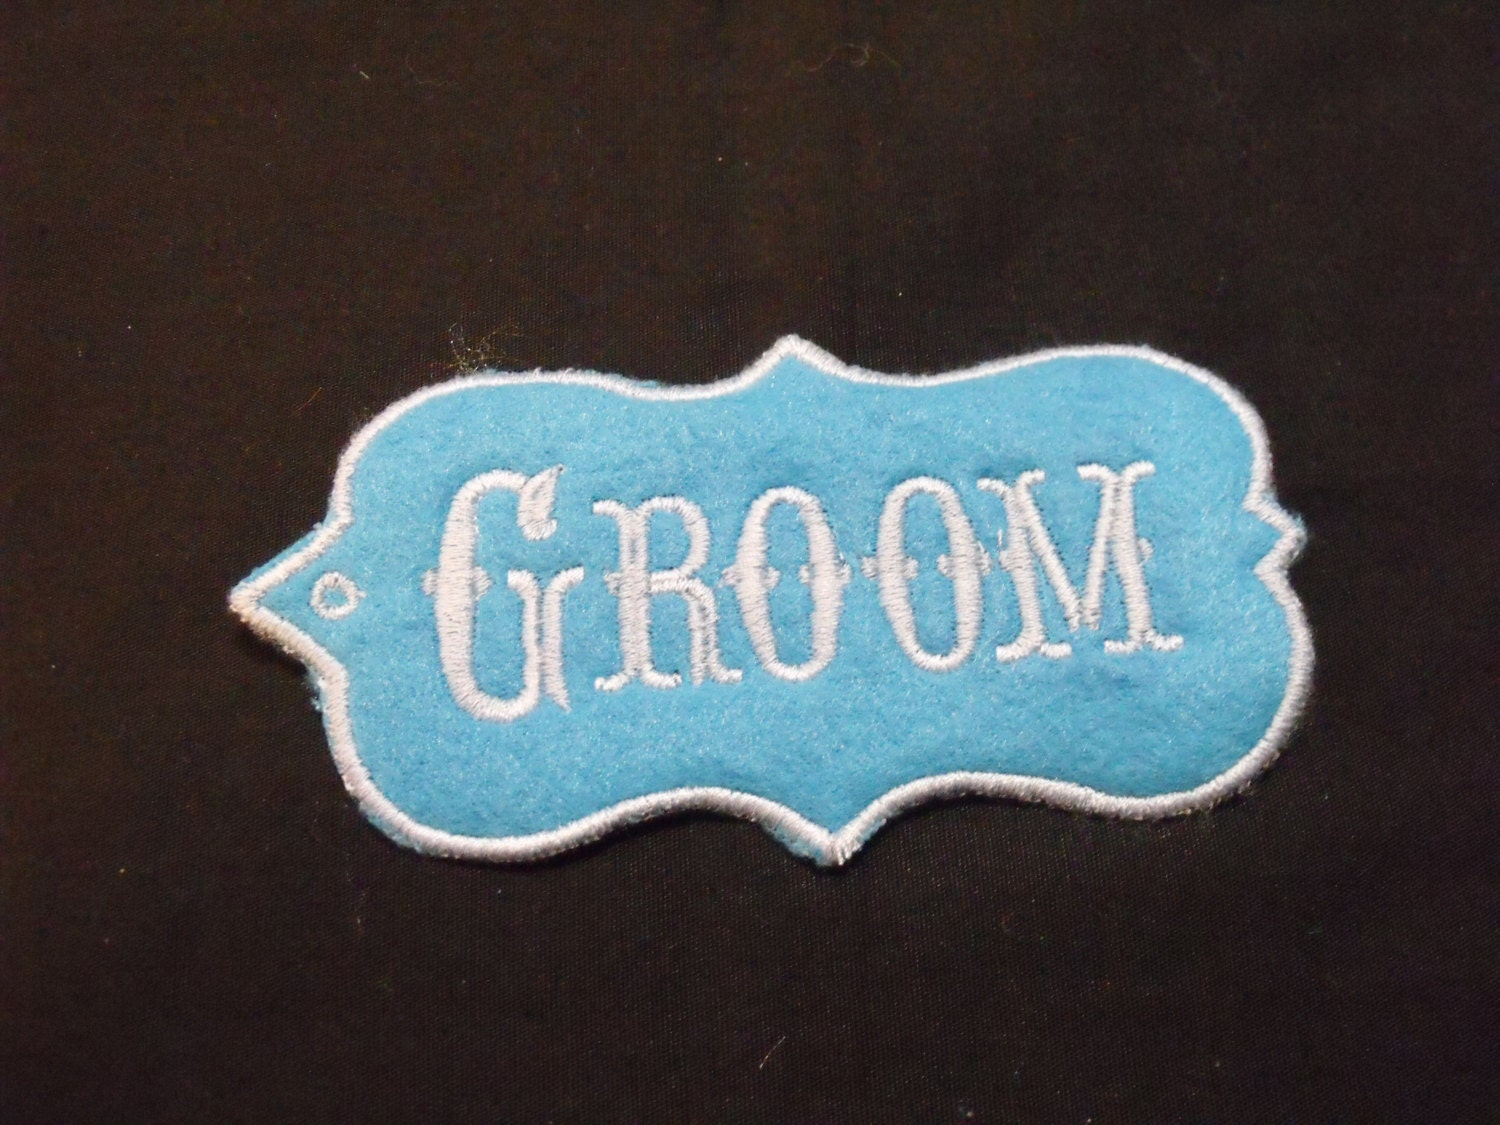 Bride and groom tags embroidered bride and groom name tags bride and groom tags embroidered bride and groom name tags bride and groom table markers customized bride and groom name tags sciox Images